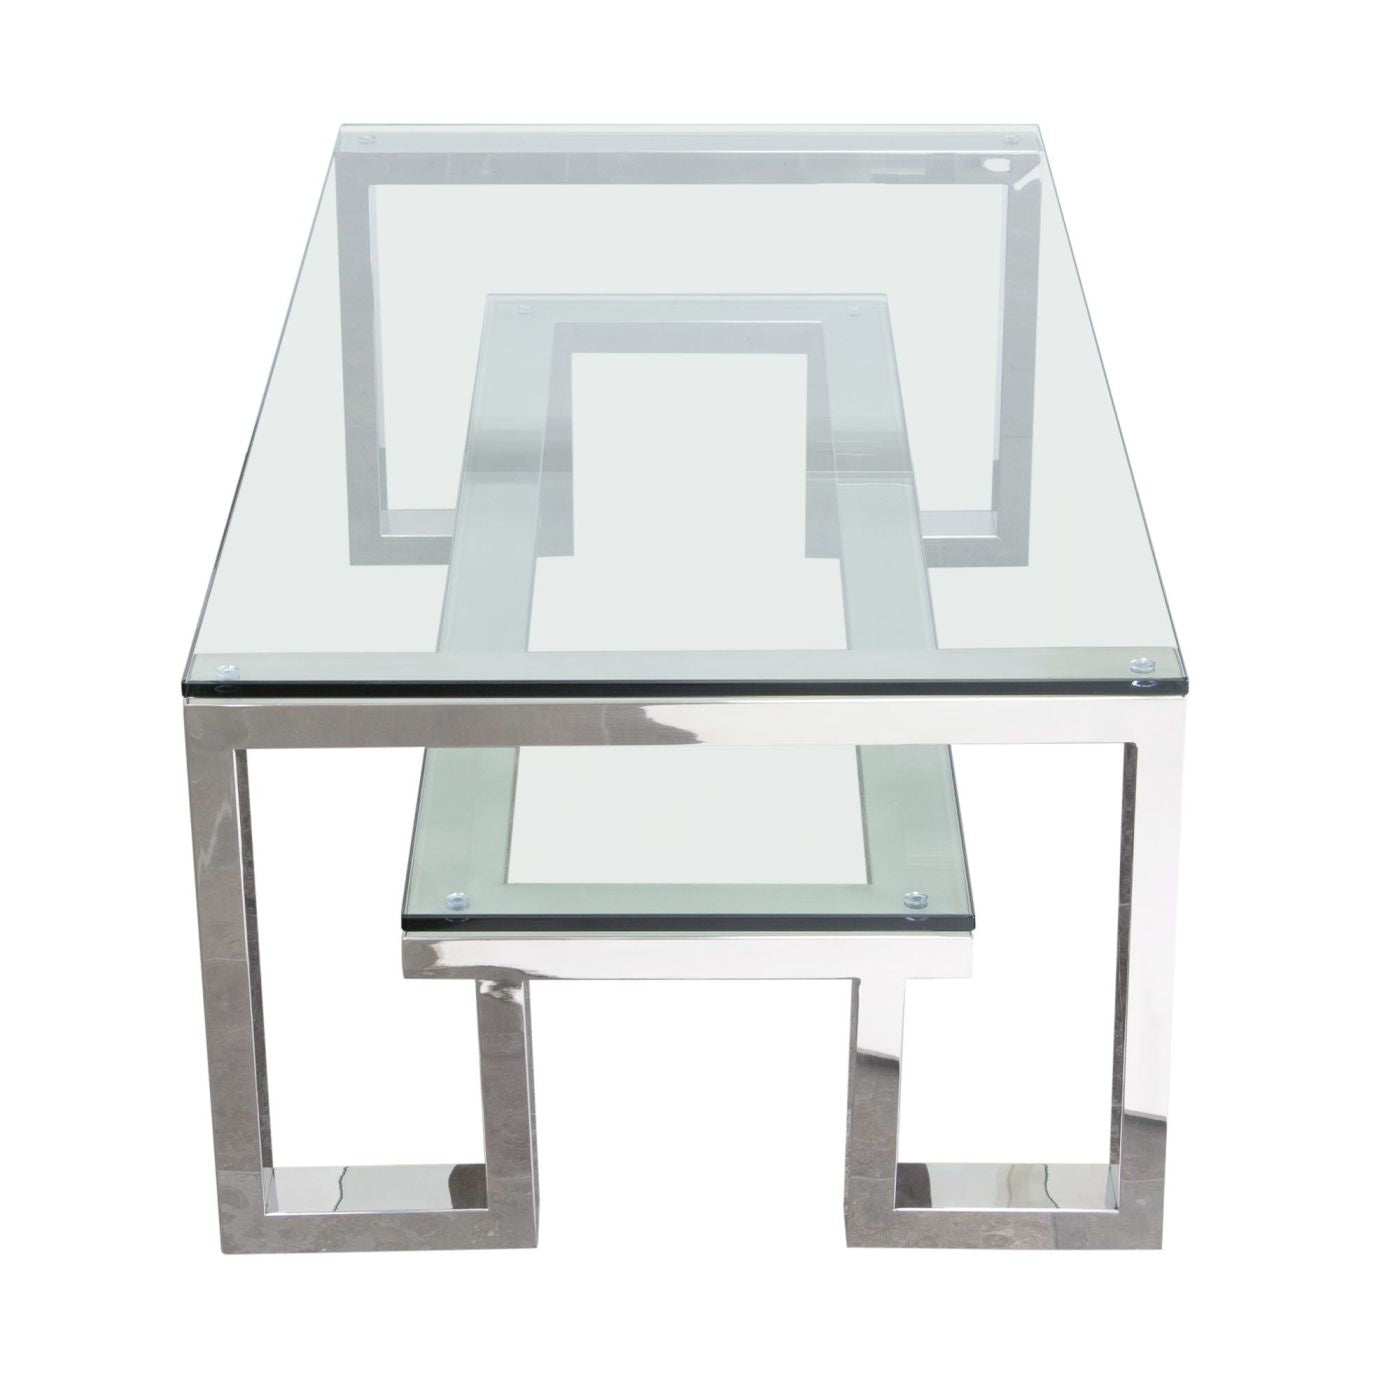 14f09cf9933 ... Carlsbad Cocktail Table With Clear Glass Top   Shelf Stainless Steel  Frame Coffee ...